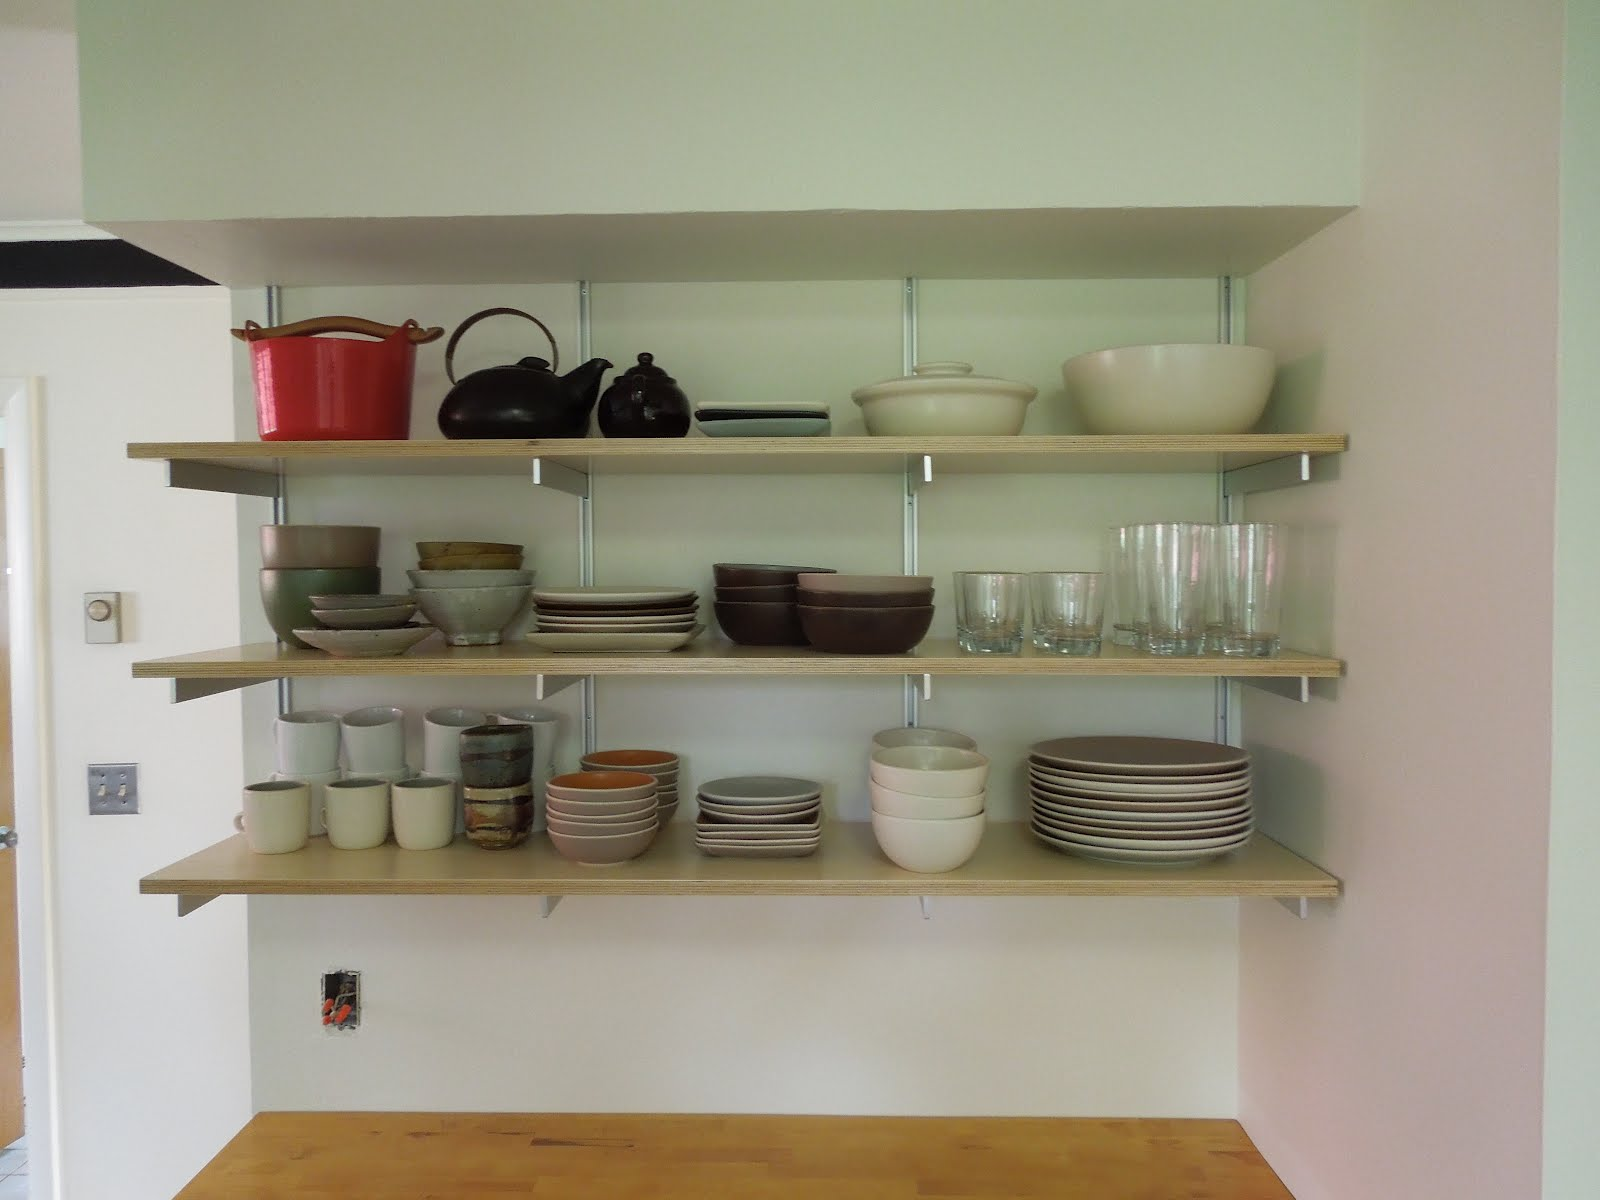 Toys and techniques kitchen shelves for Small kitchen shelves